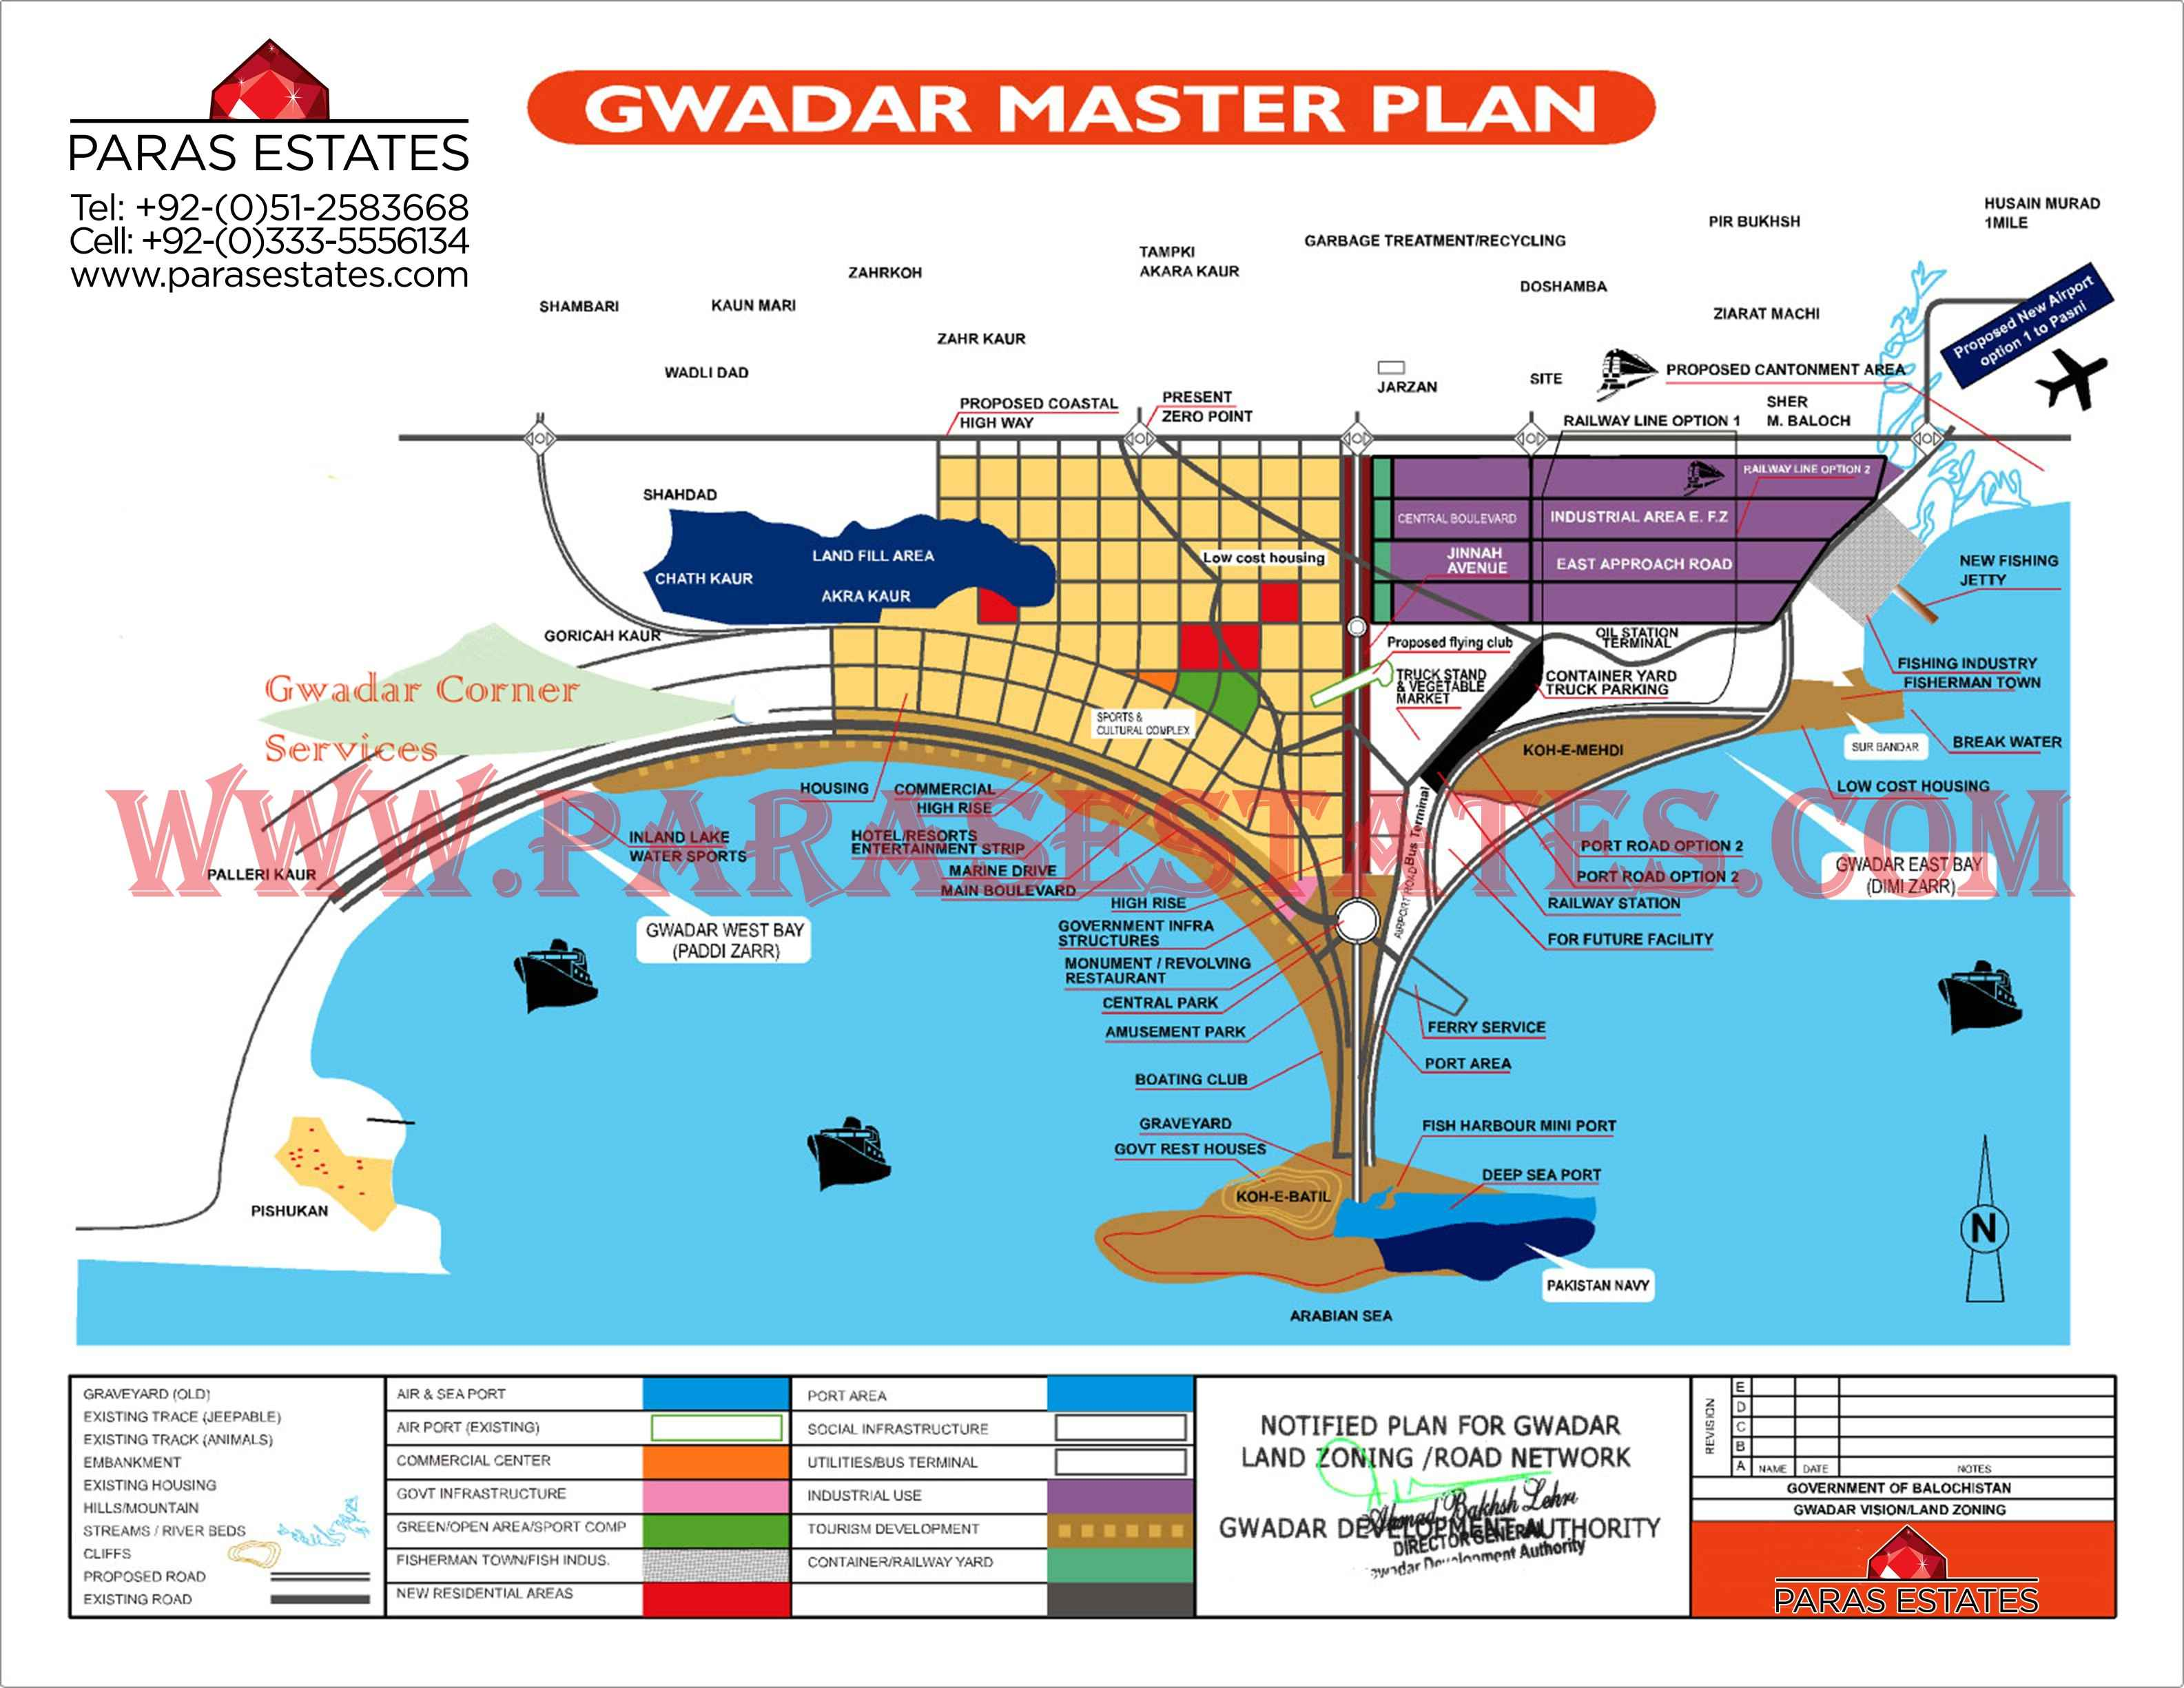 Gwadar New Buildings